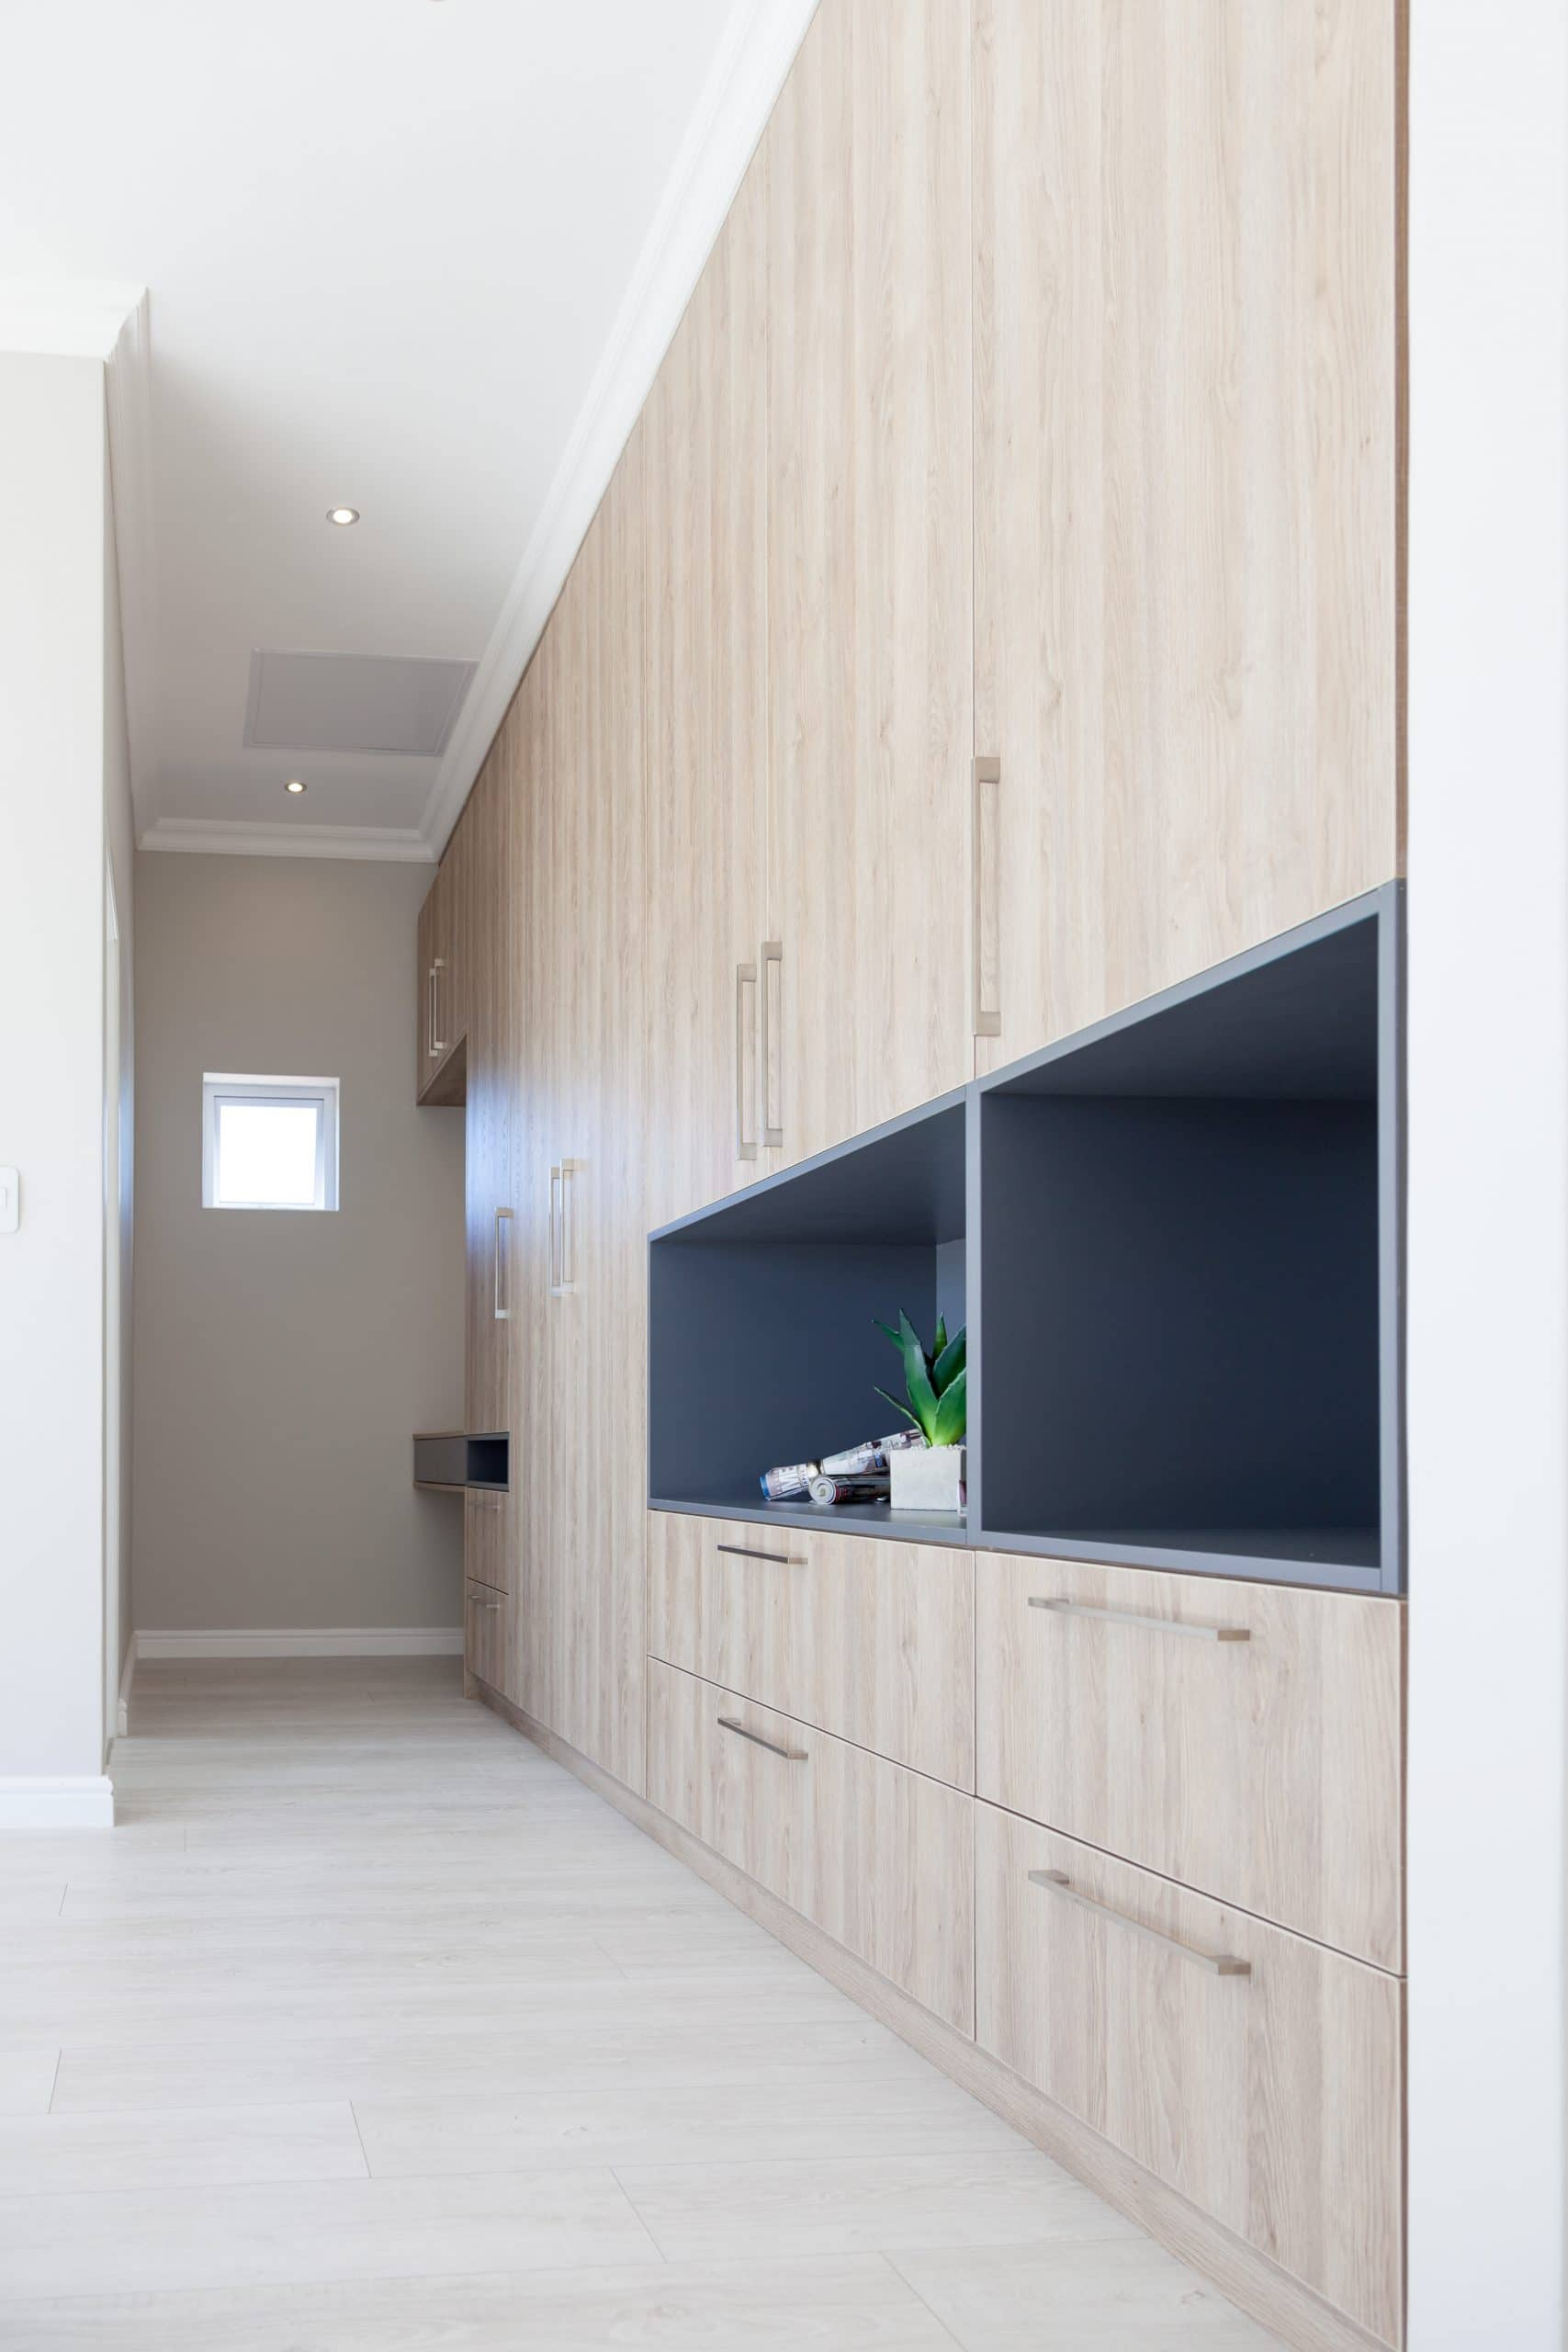 funky bedroom cupboard design with light wooden flooring and grey box